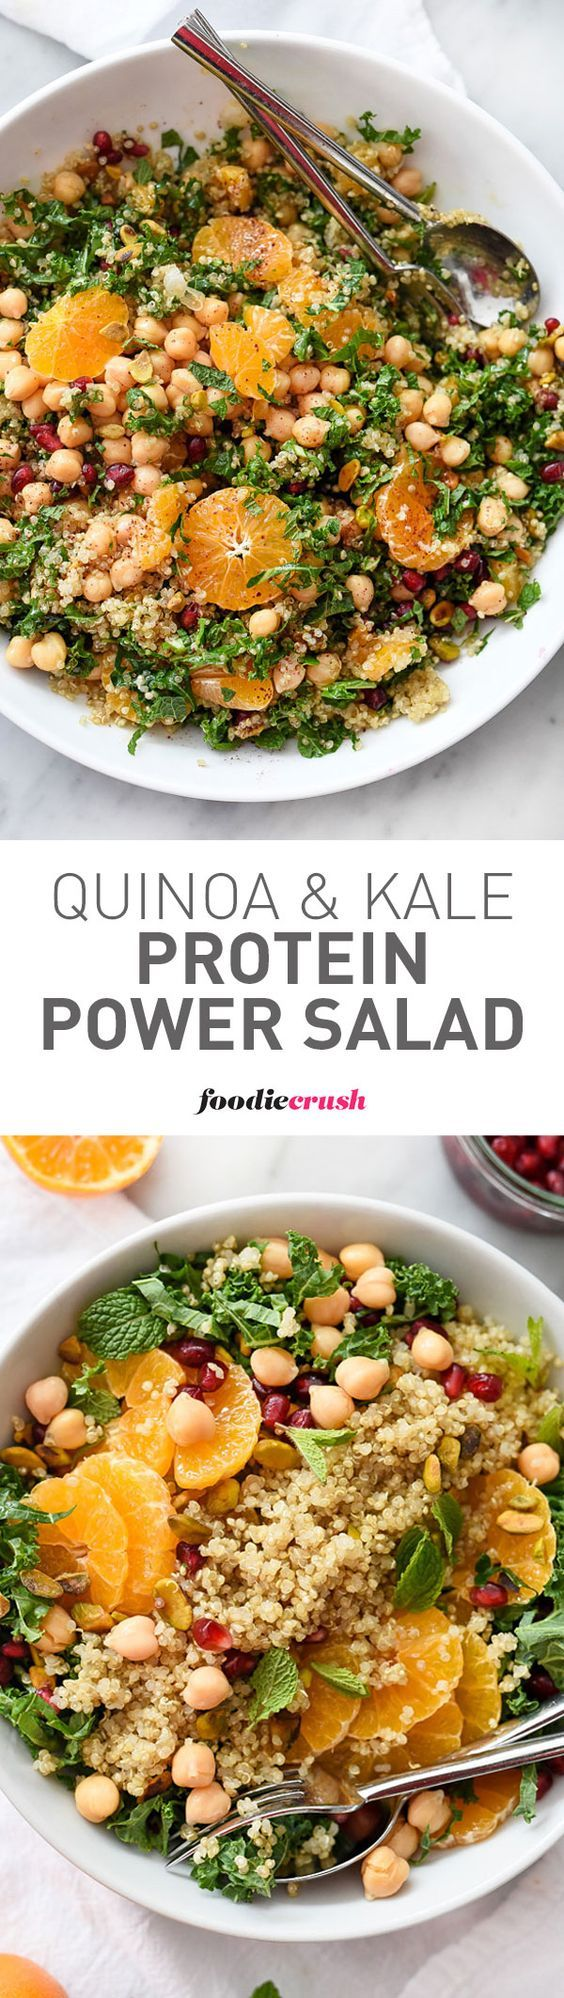 Quinoa, chickpeas (garbanzo beans) and pistachios add protein and healthy fat to this simple and seasonal kale salad, making it a favorite side dish or vegetarian main meal | foodiecrush.com: